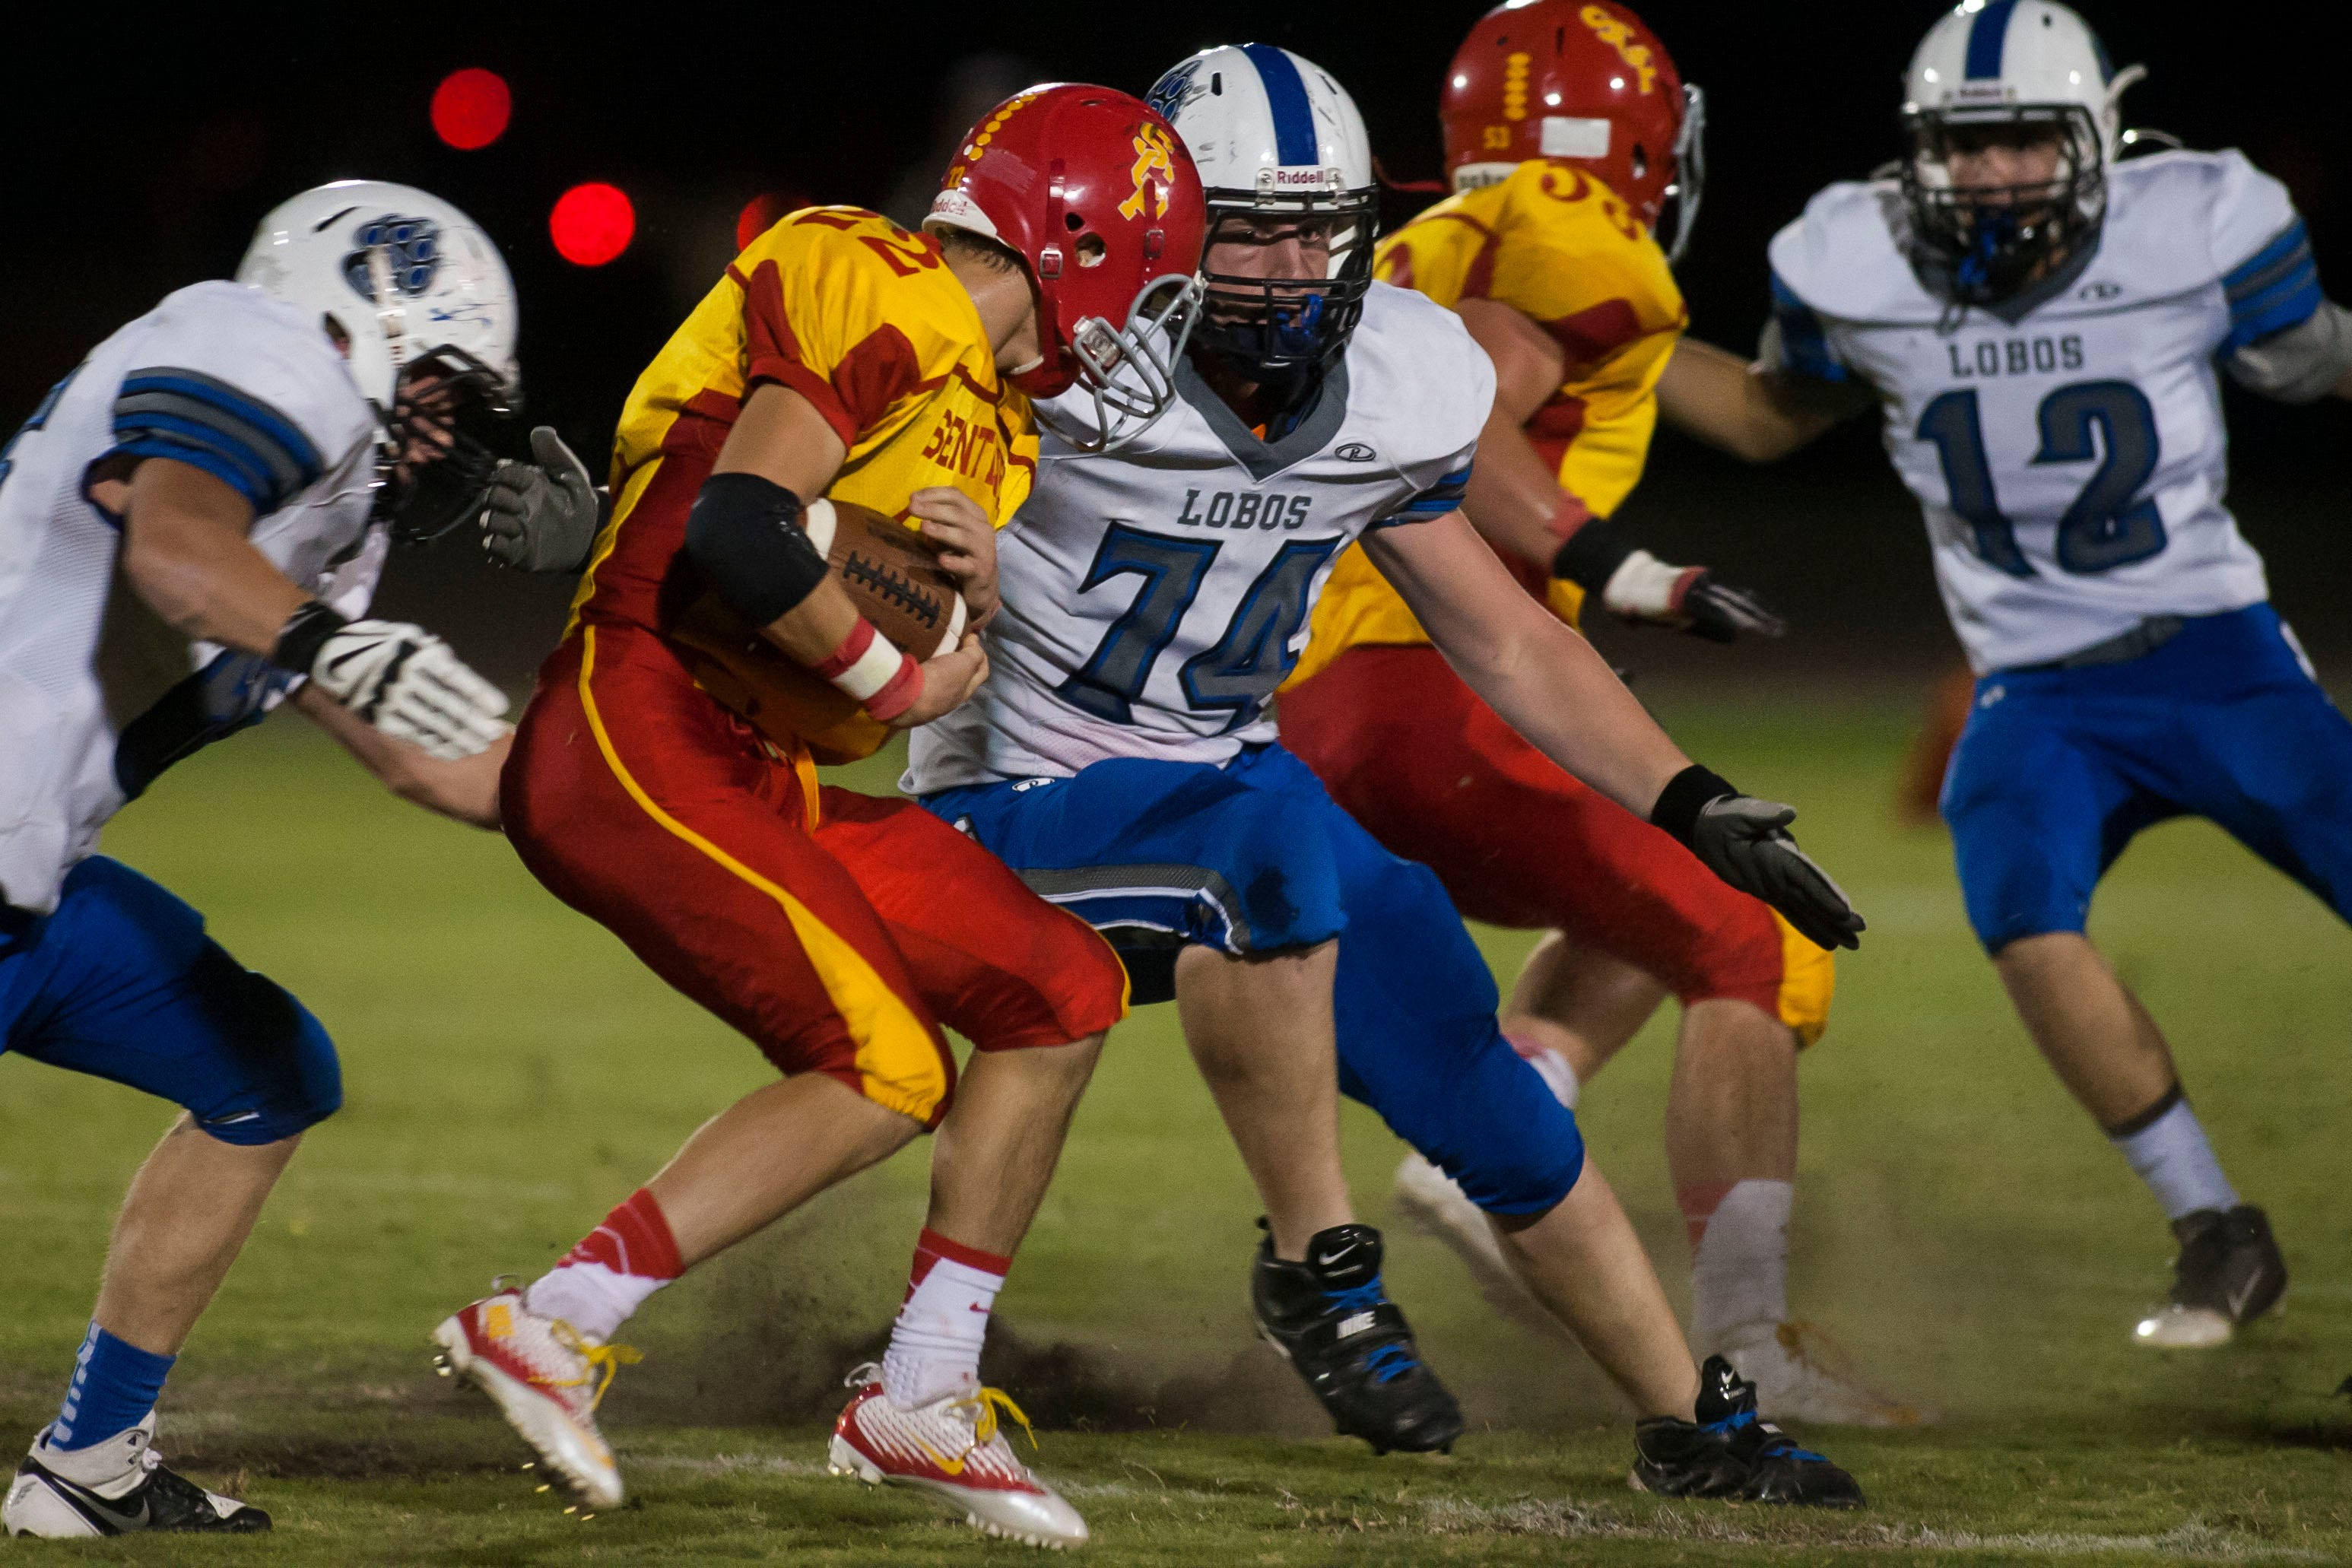 Seton Catholic senior running back Antonio Campanella, along with an experienced receiving corps, carries the Sentinels' hopes for a title.